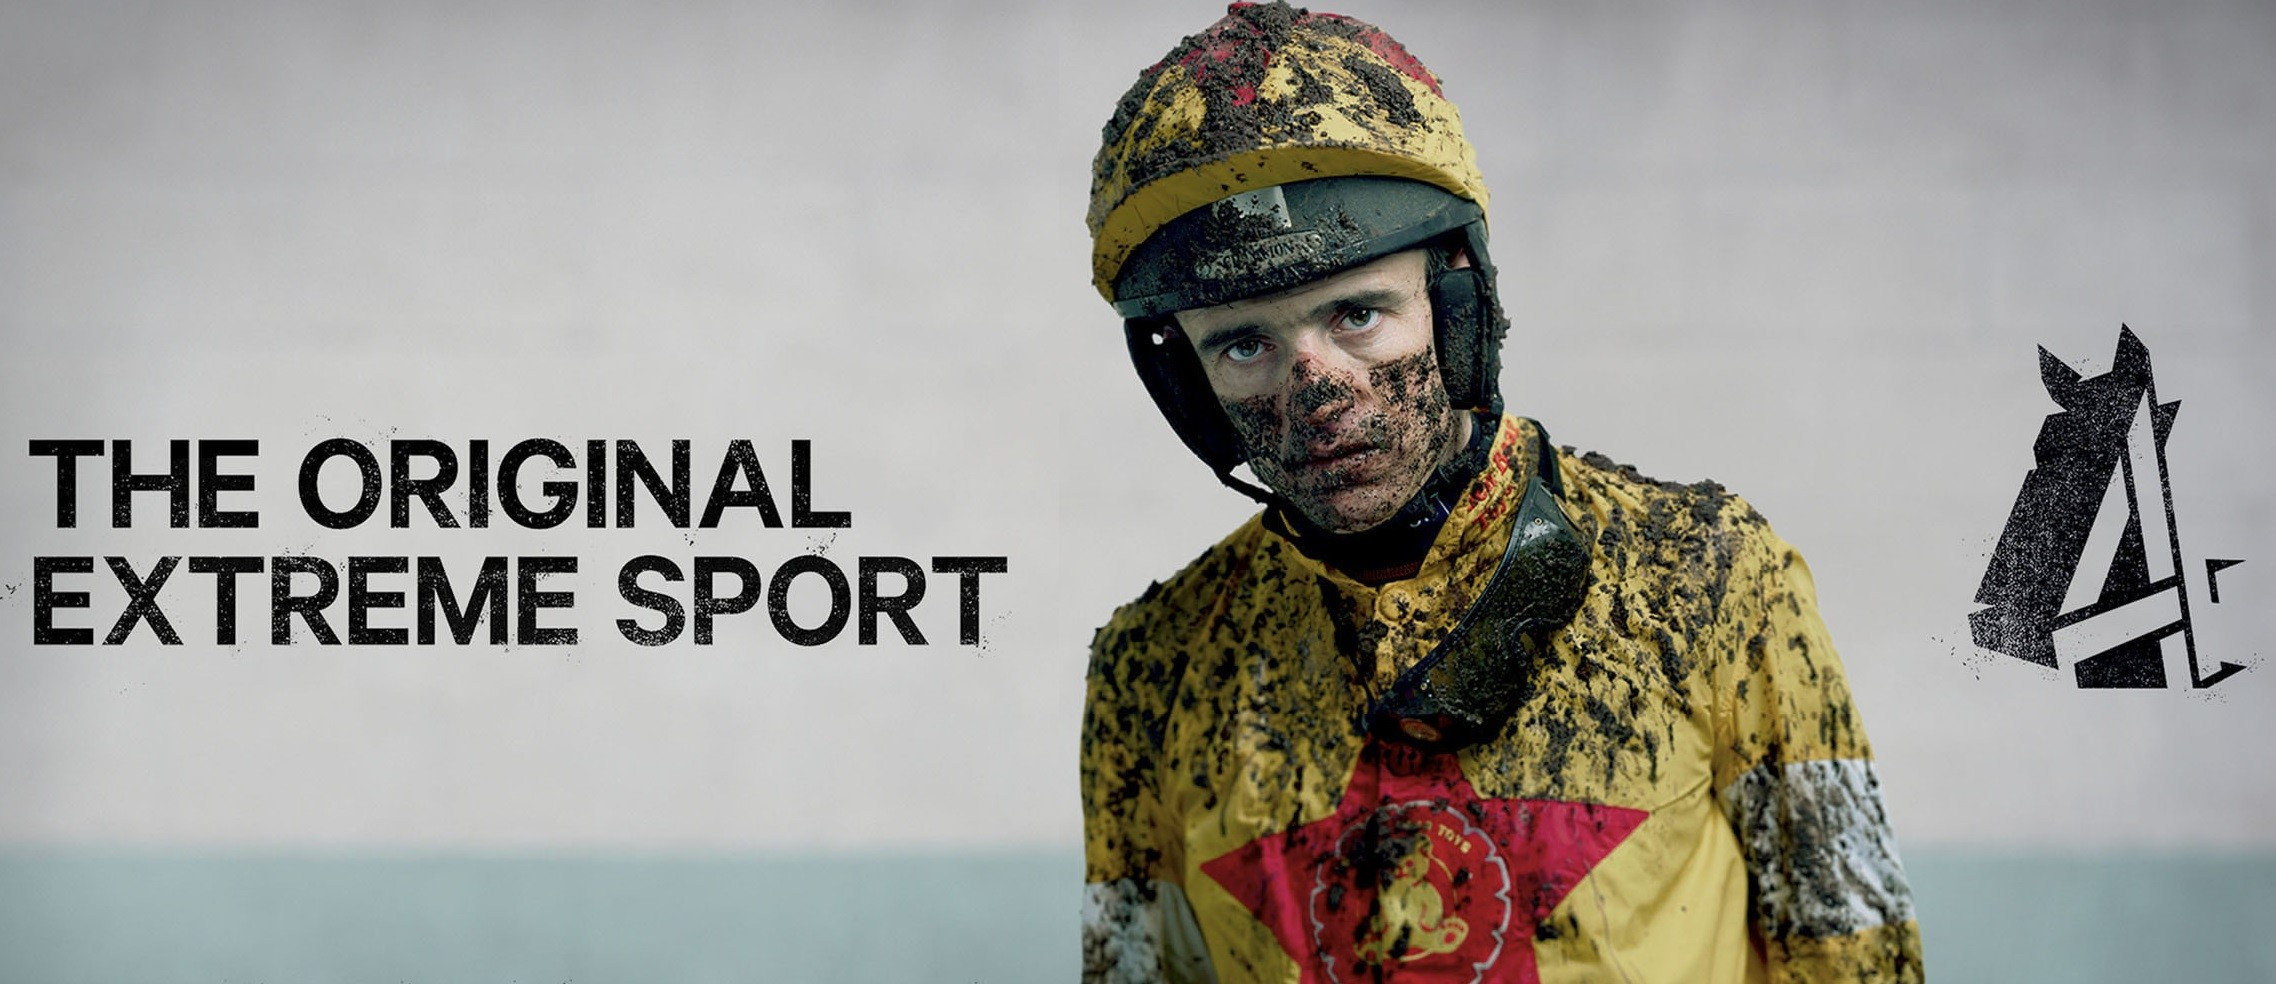 channel 4 racing betfair trading